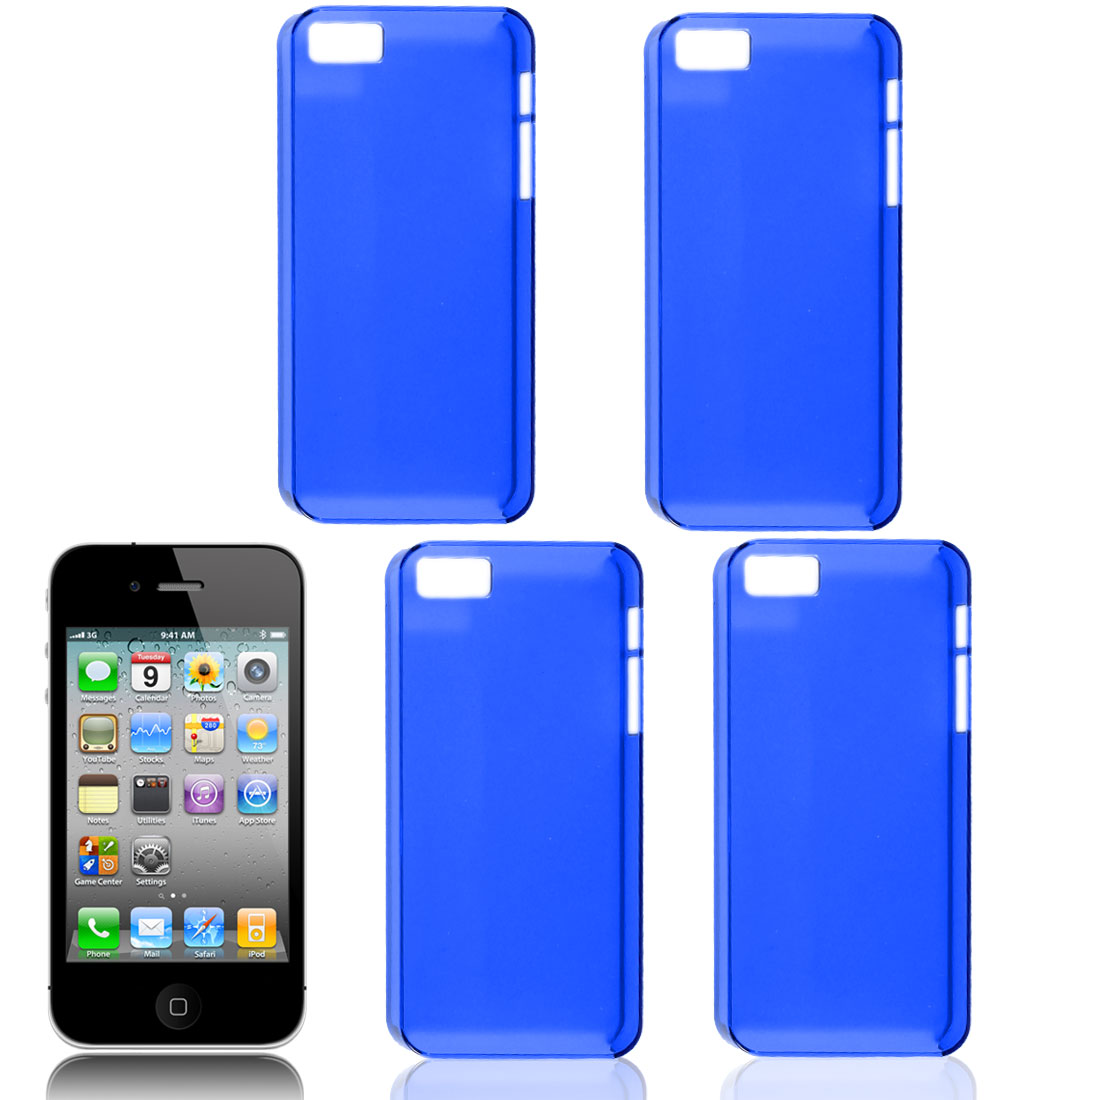 4 Pcs Blue Plastic Protector Shell Back Case Cover for iPhone 5 5S 5G 5GS